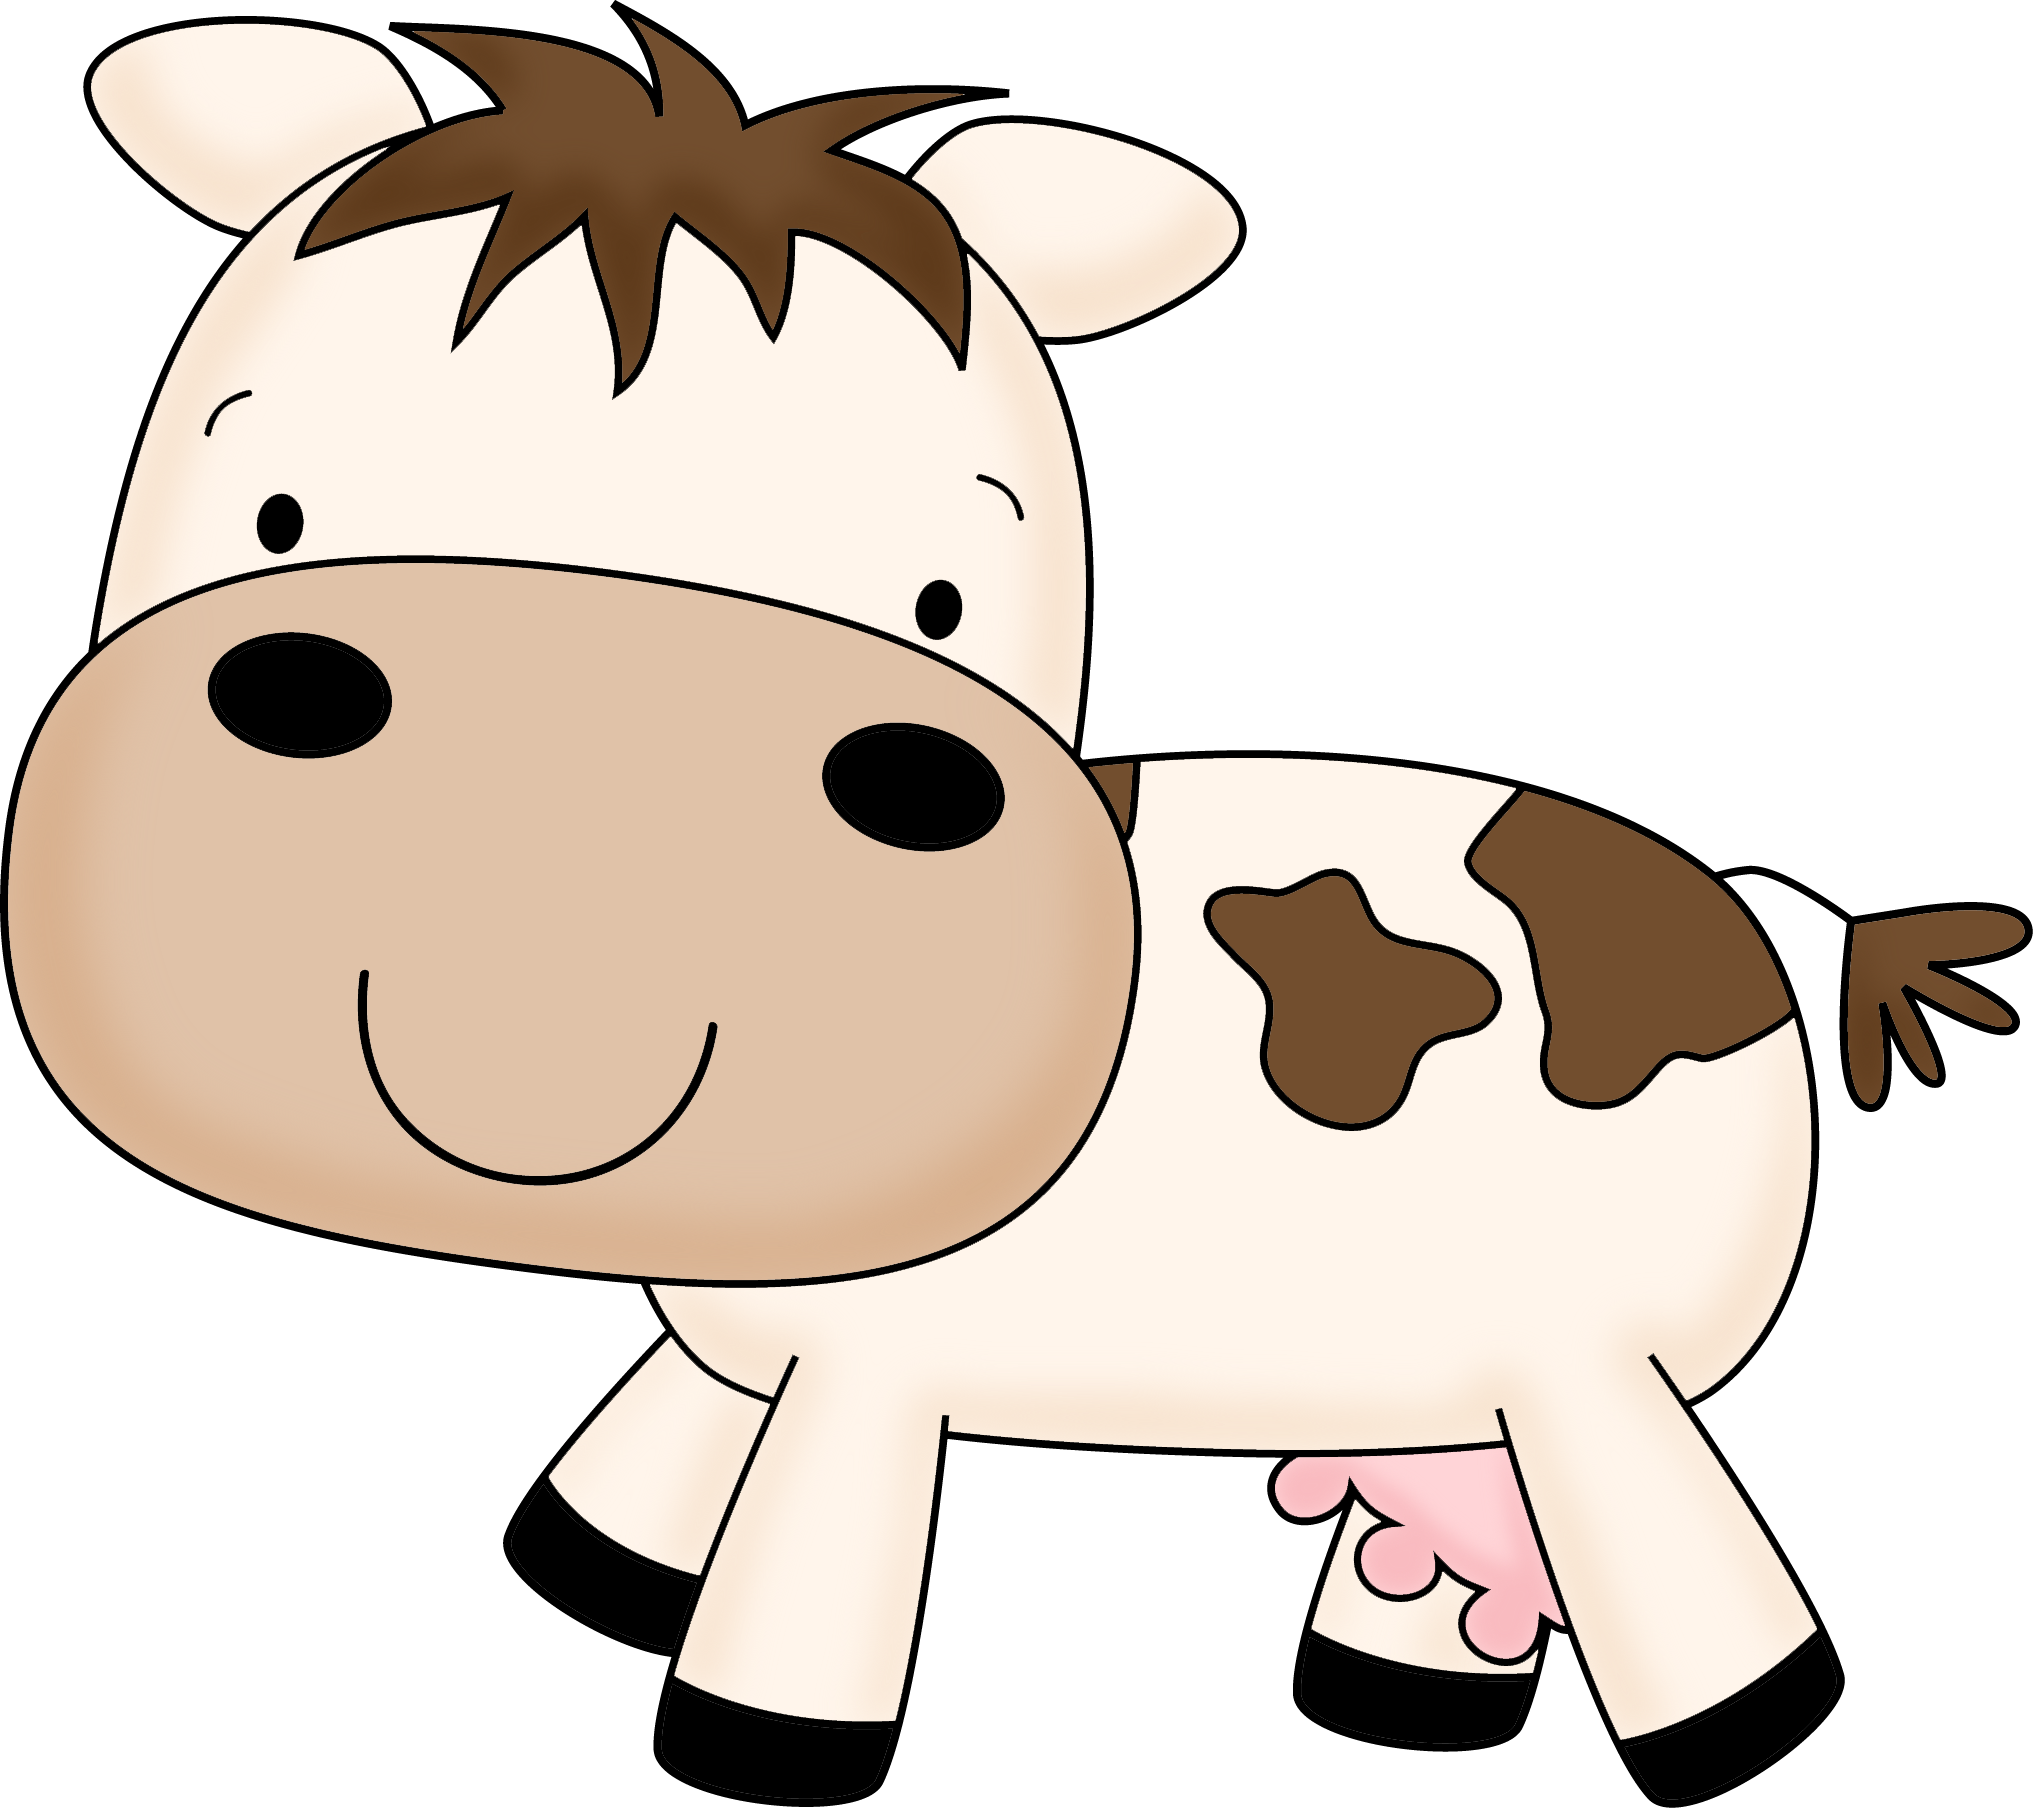 vector stock Animals at getdrawings com. Free farm animal clipart